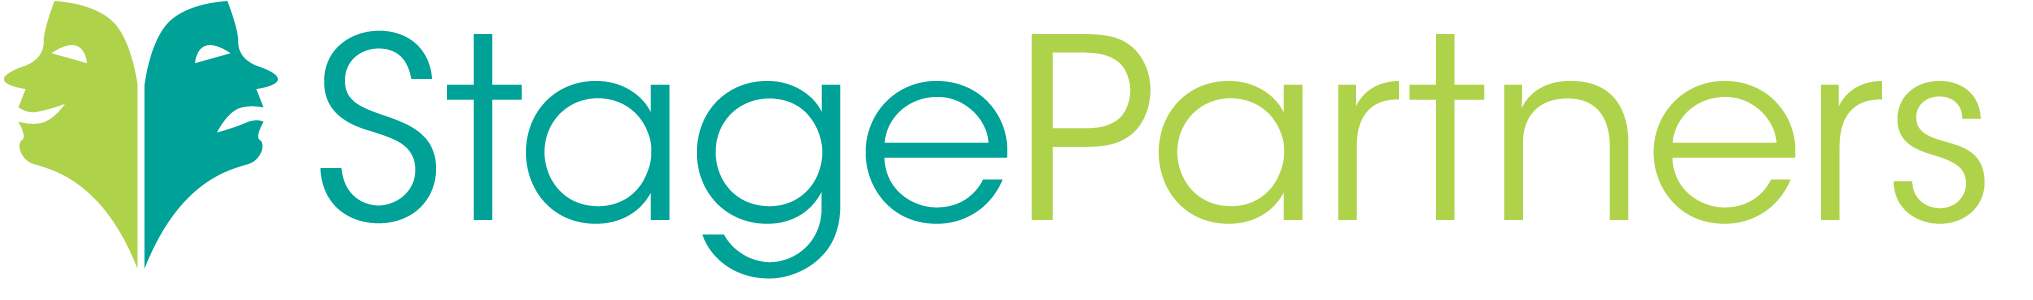 stage partners logo